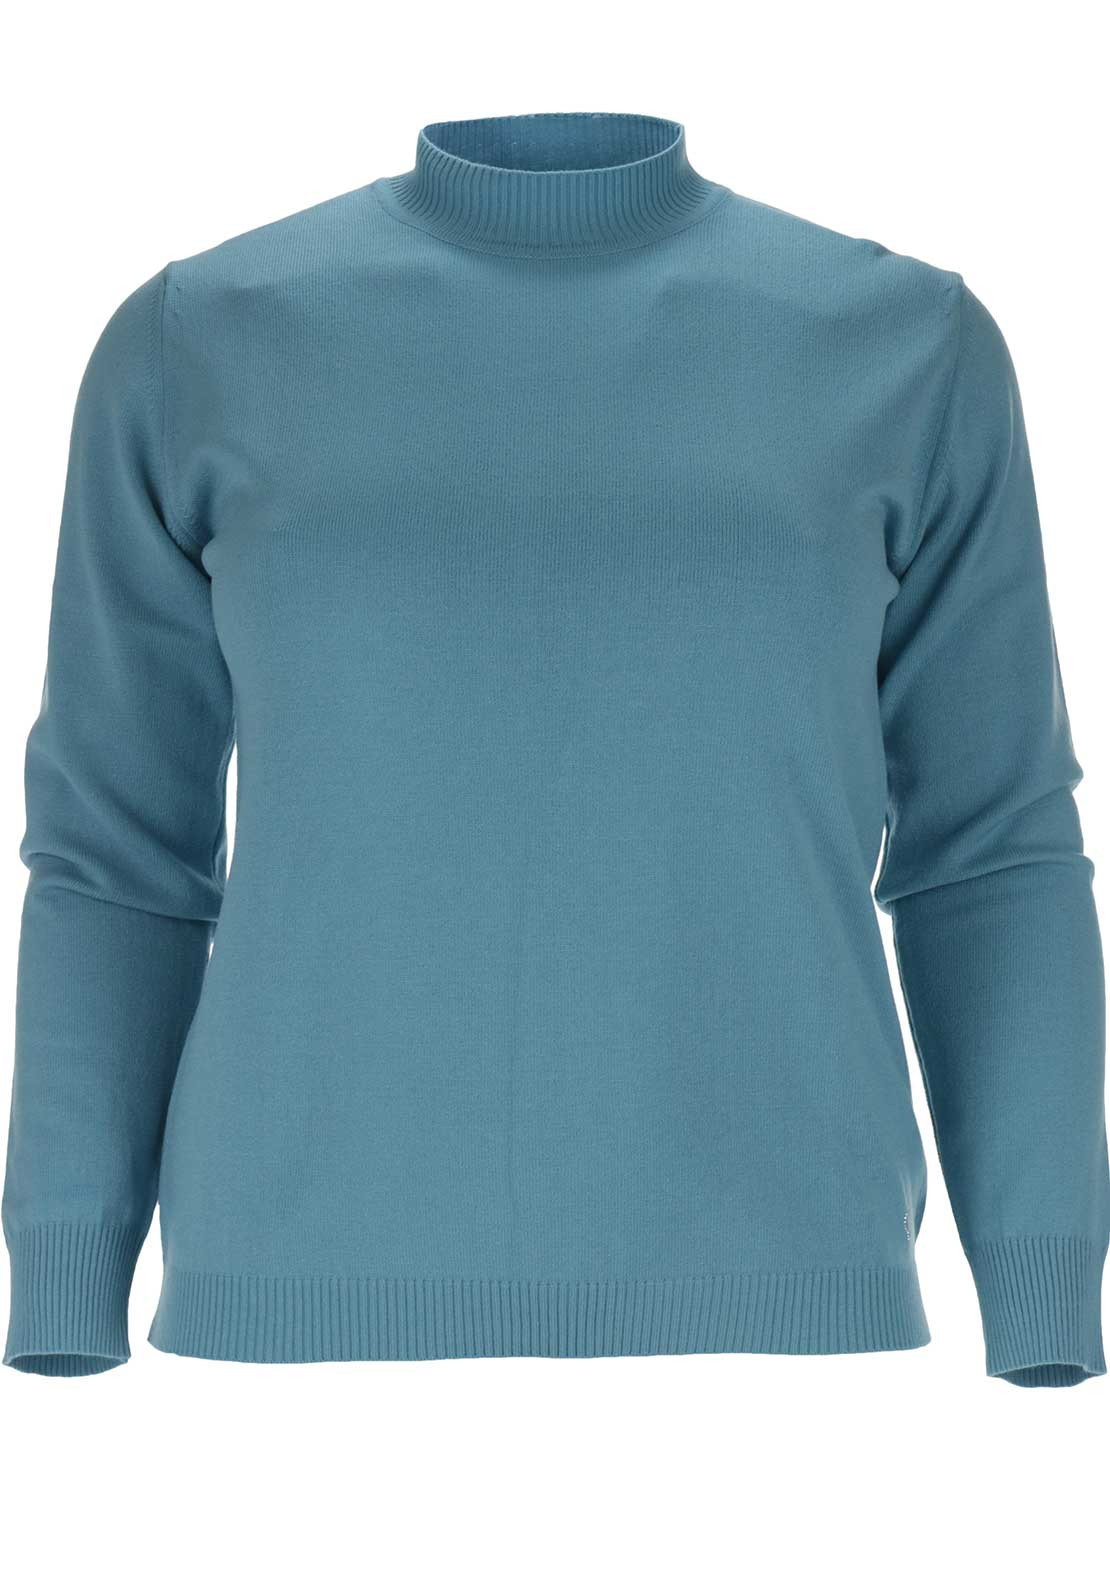 Lebek Fine Knit Long Sleeve Jumper, Aqua Blue